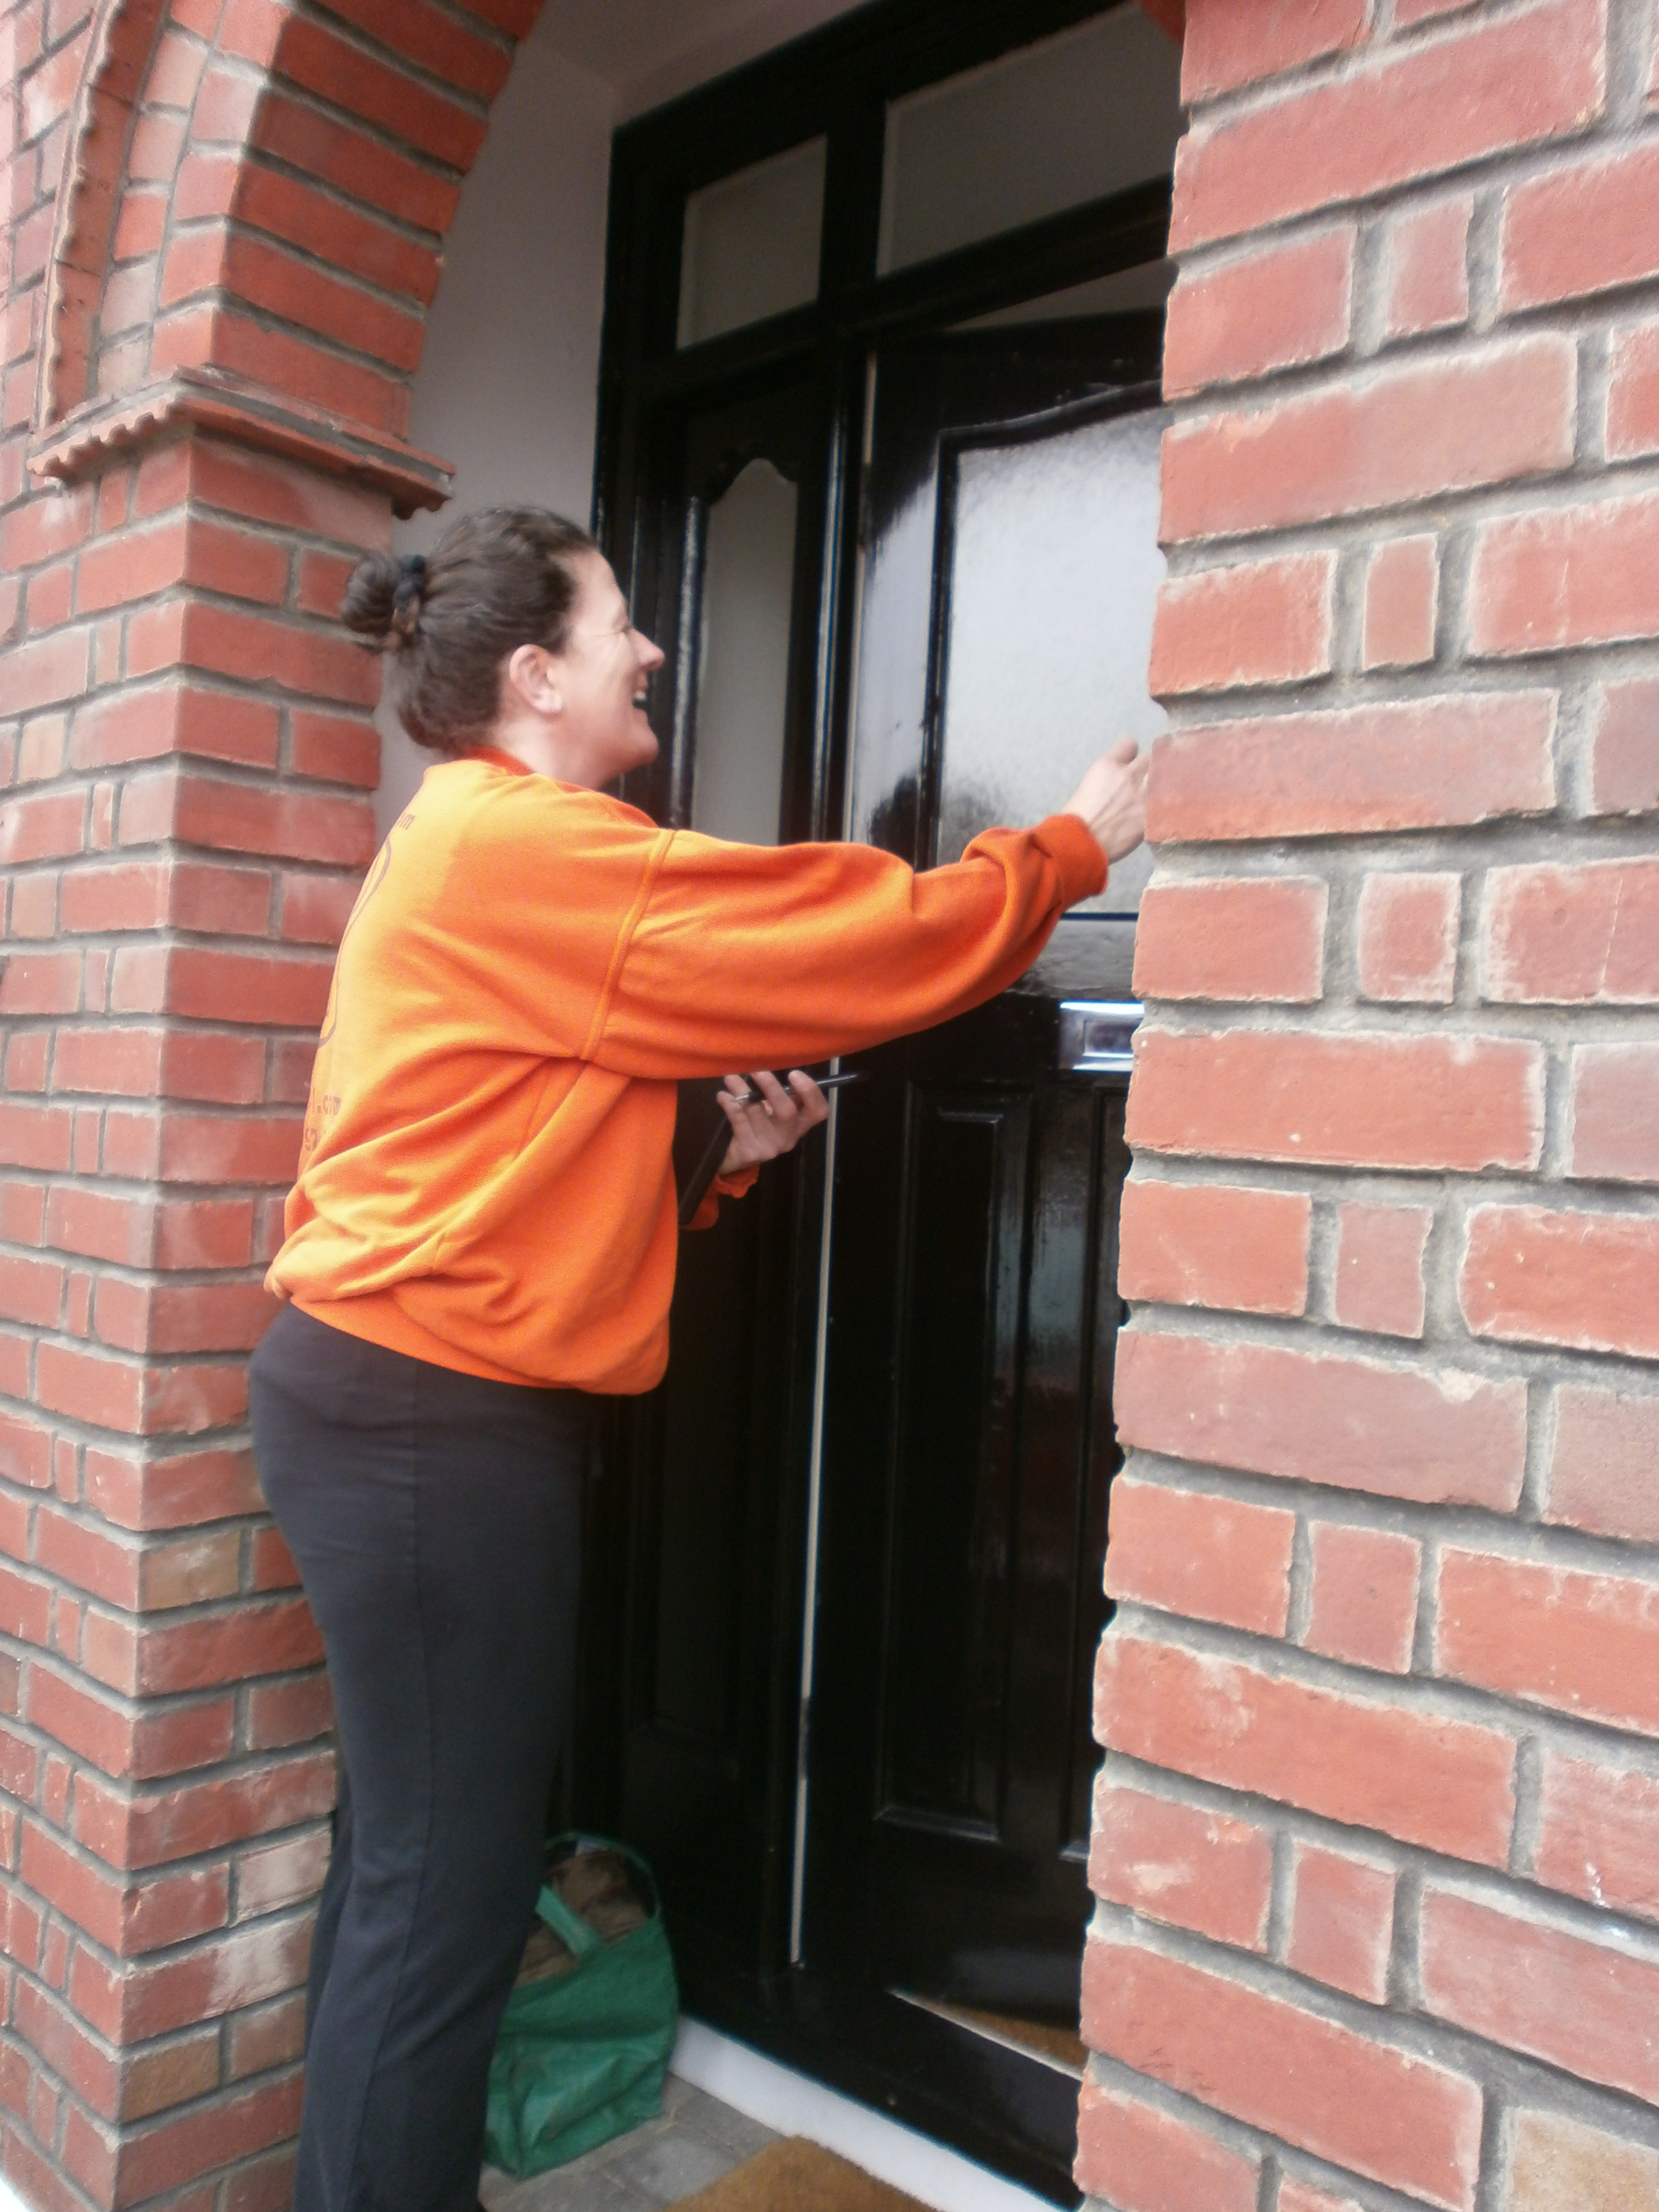 Looking after people's homes